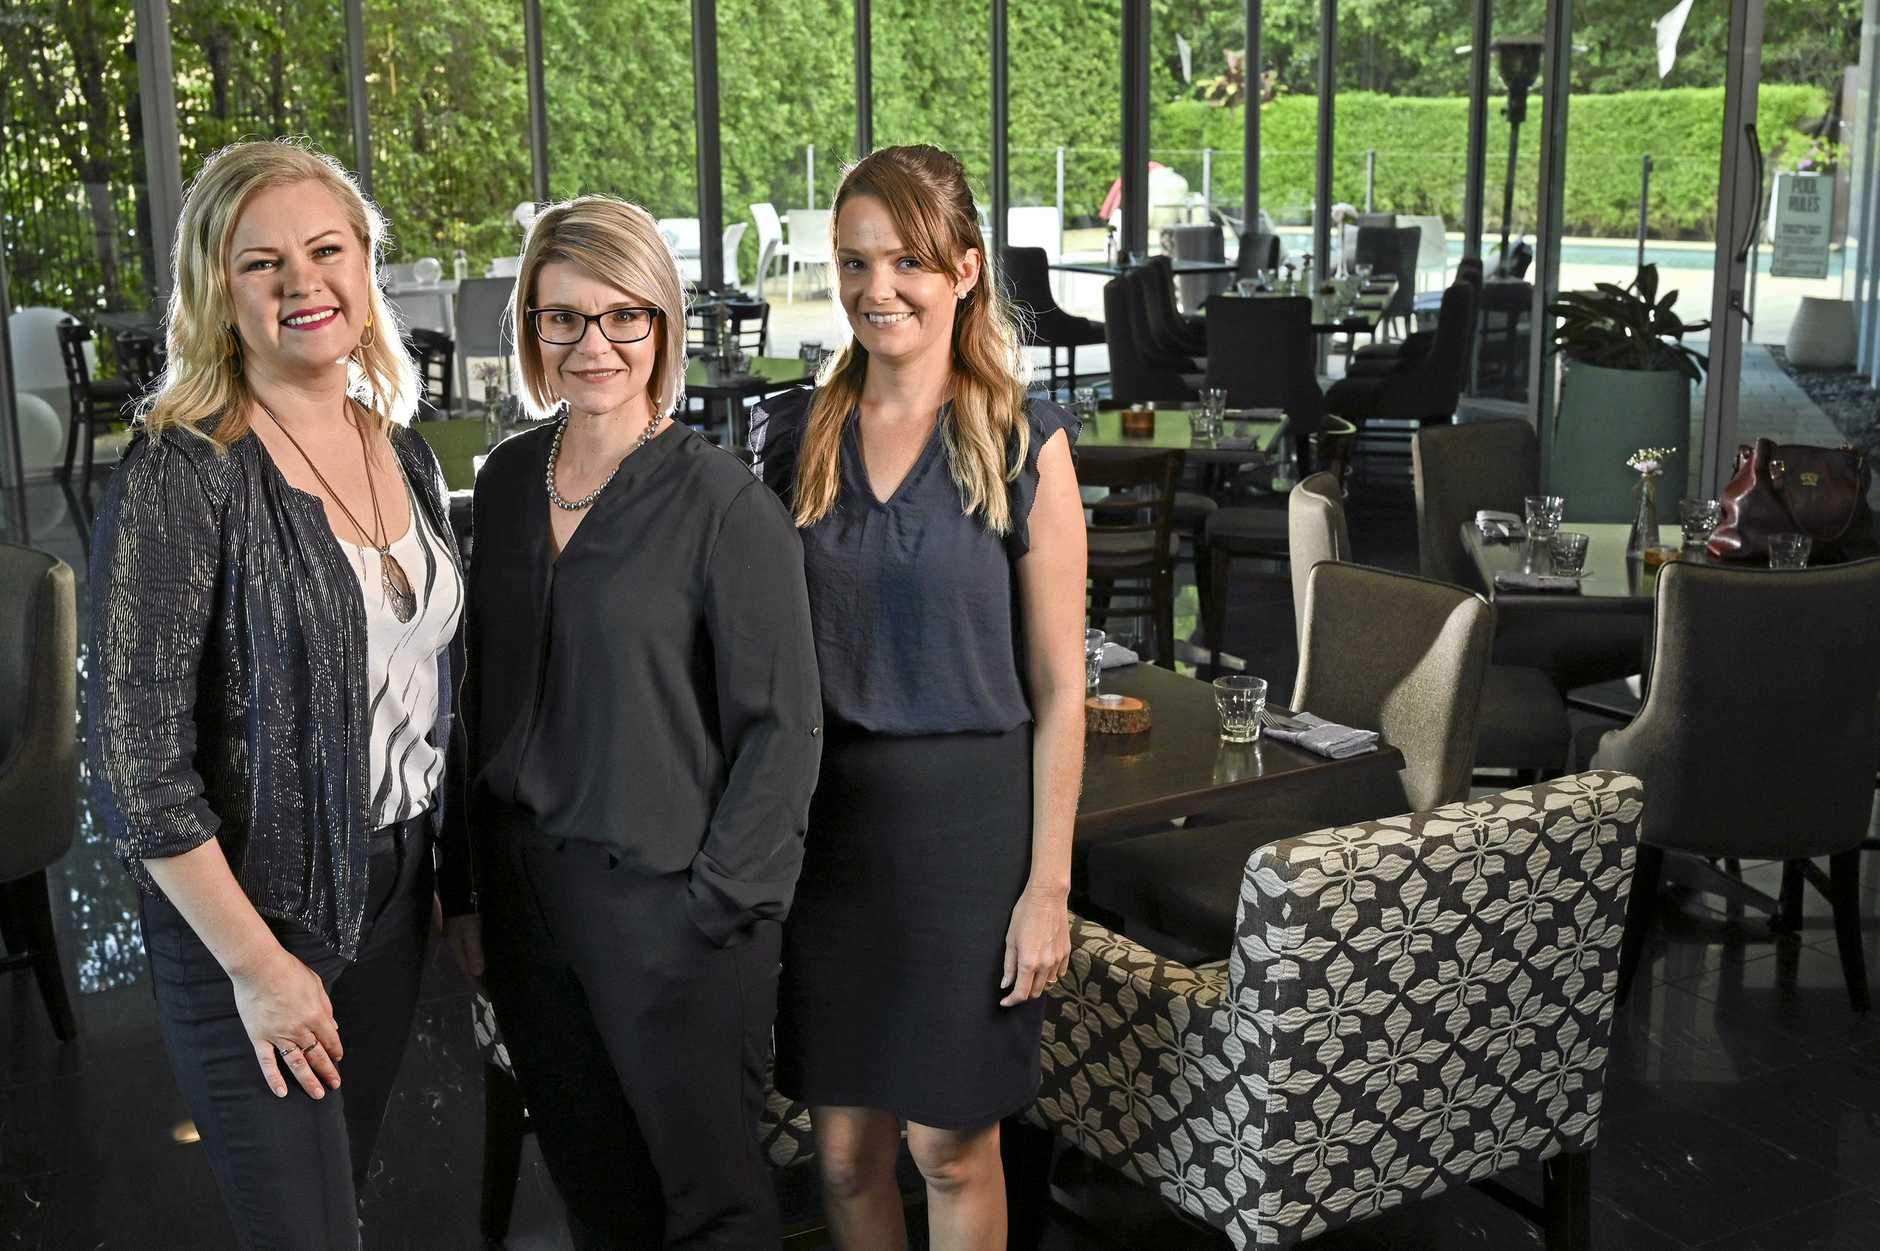 SUPPORTING EACH OTHER: Sirle Adamson, of BLVD Restaurant, Sara Vaines, of Springfield Lakes Hotel and Mel Freiberg, of Dark Horse Coffee.